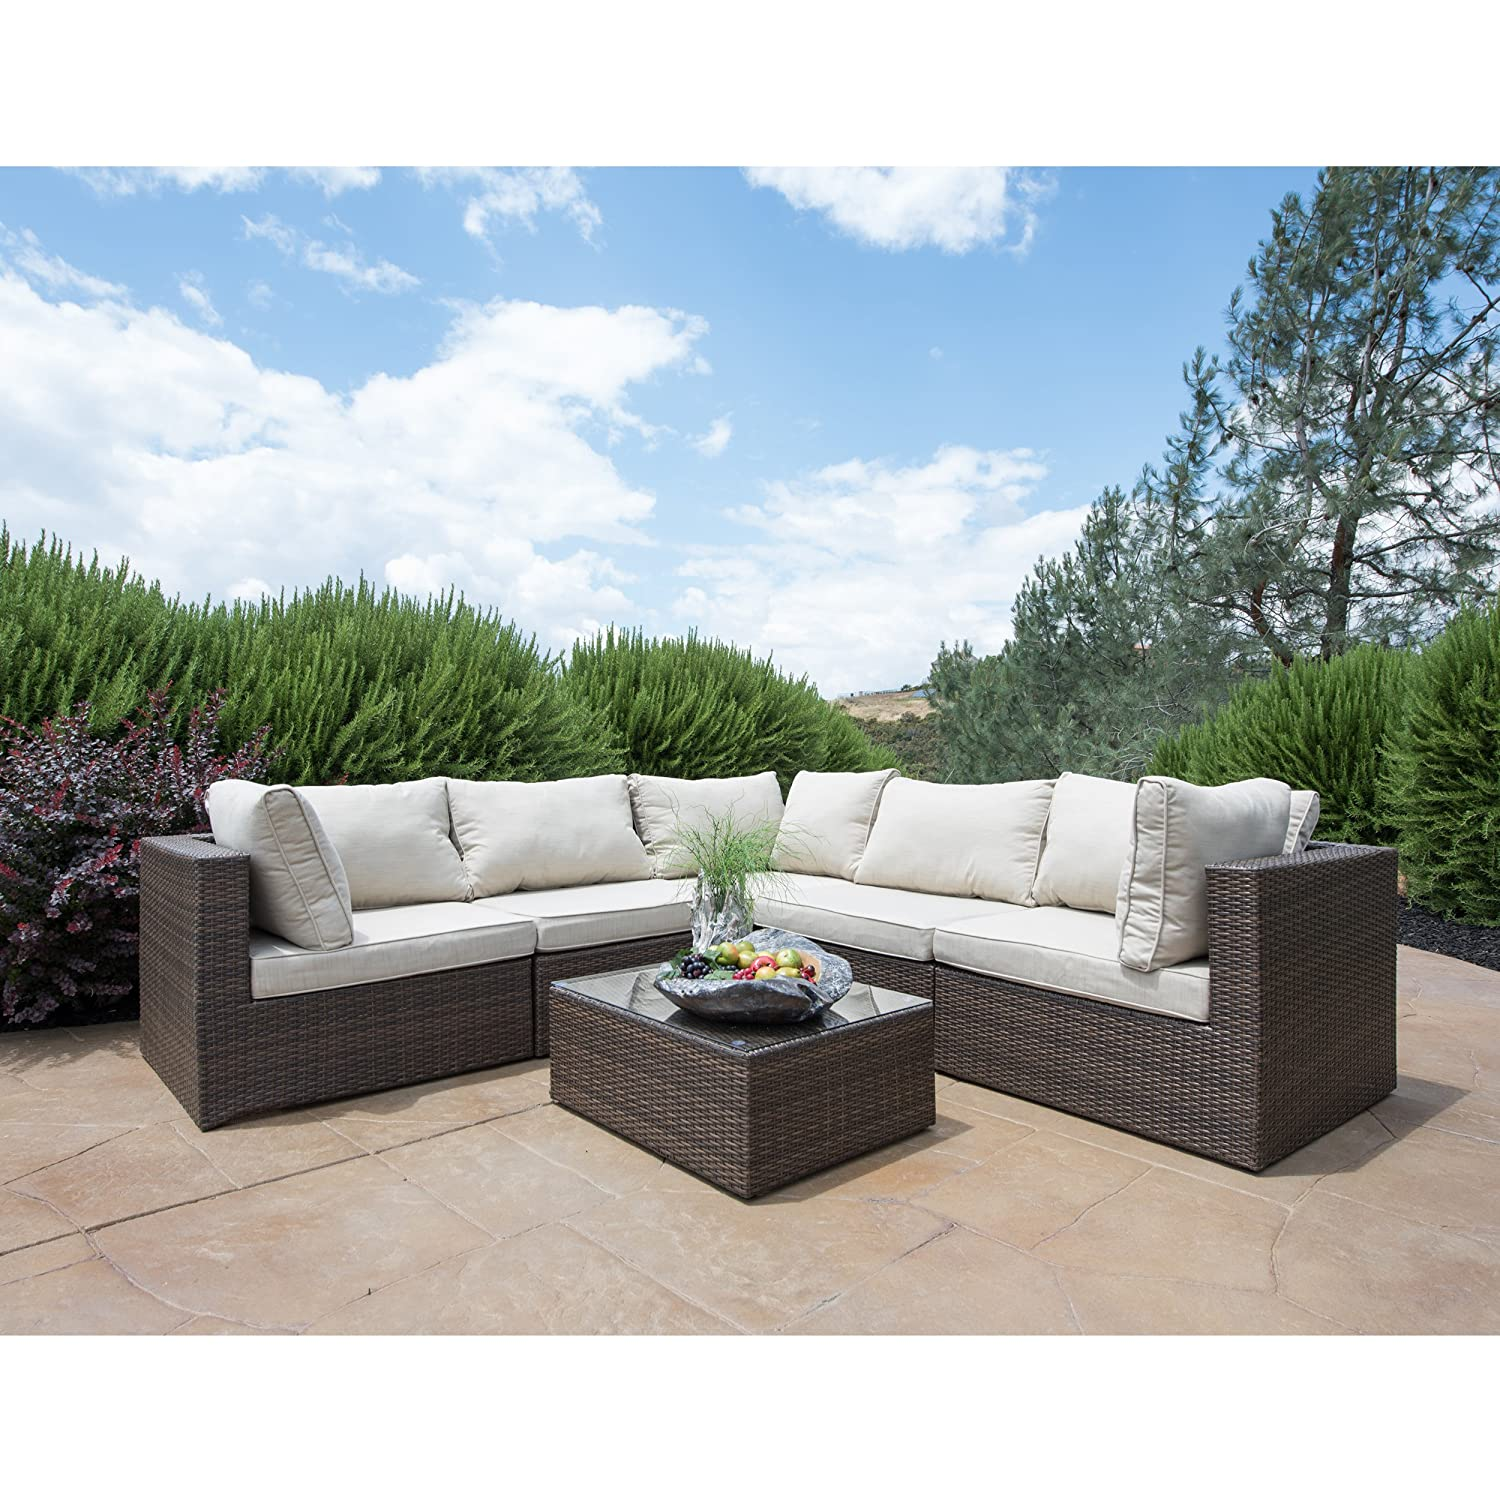 residential outdoor woven kenzo furniture sets patio location